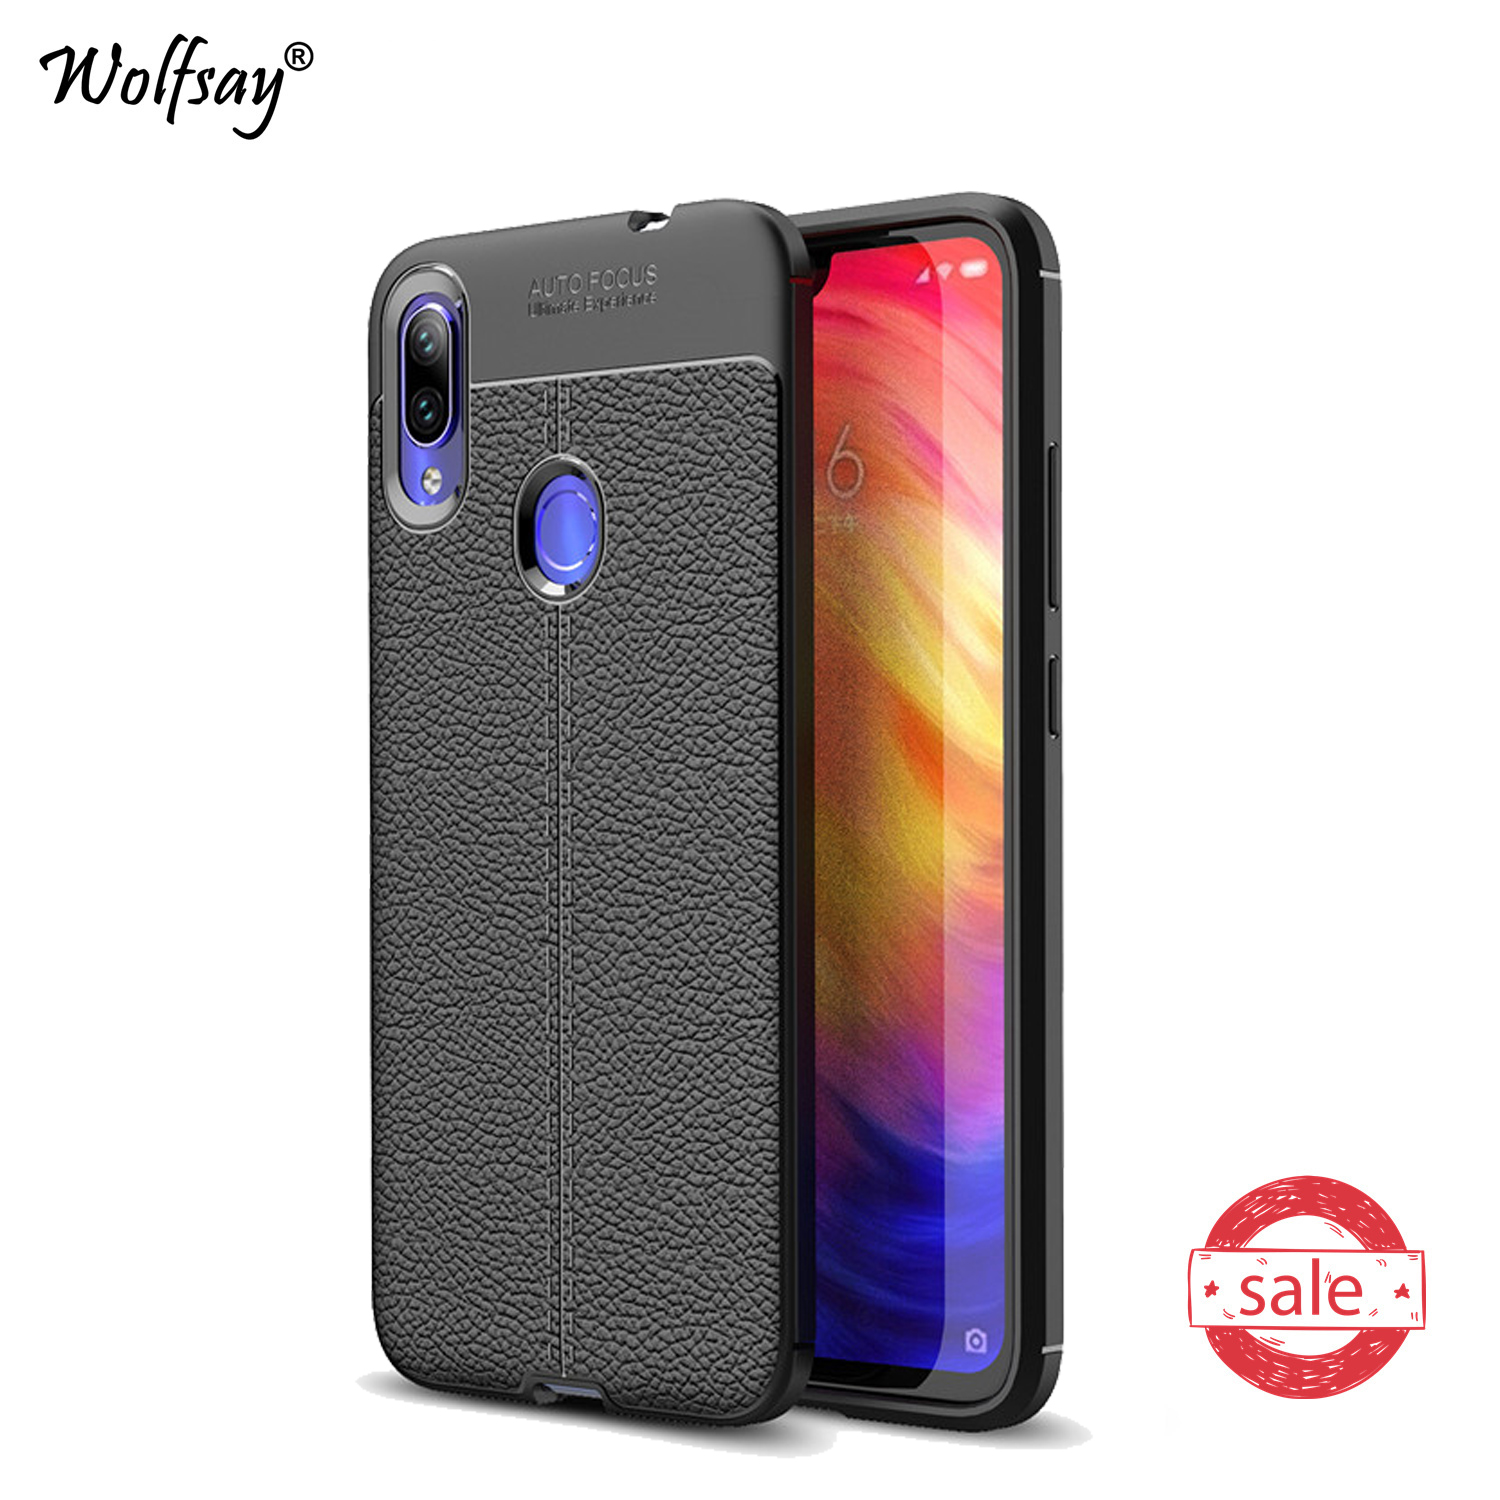 For <font><b>Xiaomi</b></font> <font><b>Redmi</b></font> Note <font><b>7</b></font> Case Shockproof Litchi Pattern Soft Rubber Phone Case For <font><b>Xiaomi</b></font> <font><b>Redmi</b></font> Note <font><b>7</b></font> <font><b>Back</b></font> <font><b>Cover</b></font> For <font><b>Redmi</b></font> Note7 image